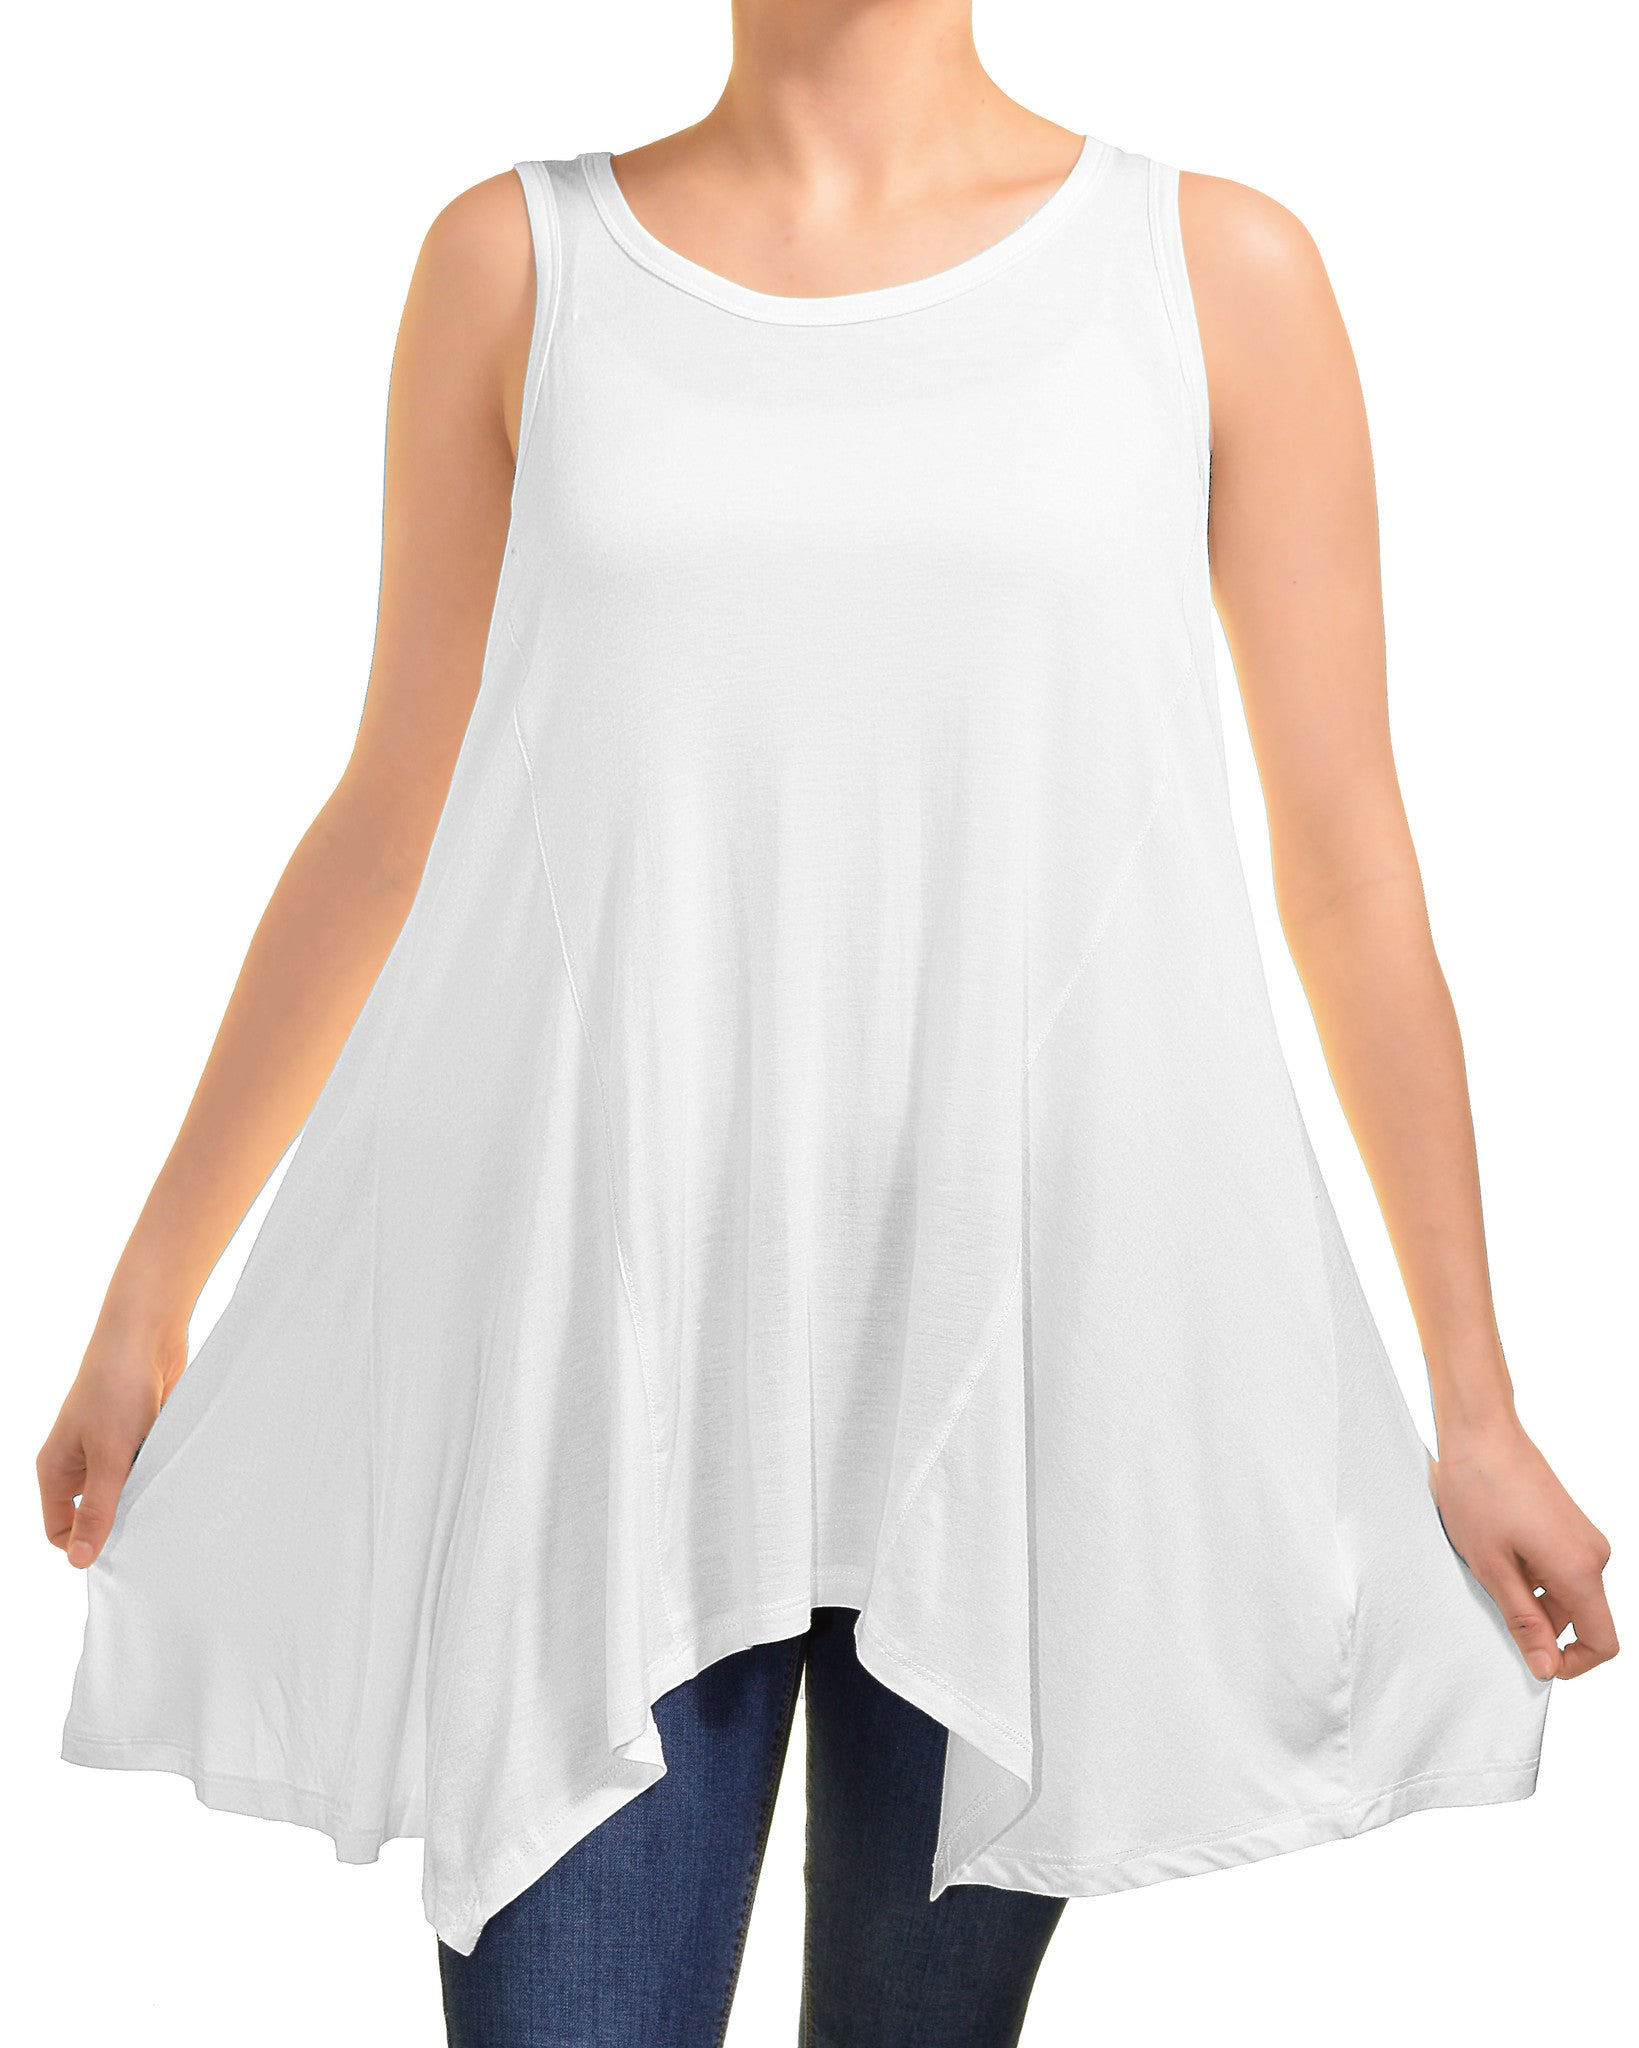 Ellie & Kate Ultrasoft Sharkbite Tank (White),Shirts,Ellie & Kate - Discount Divas